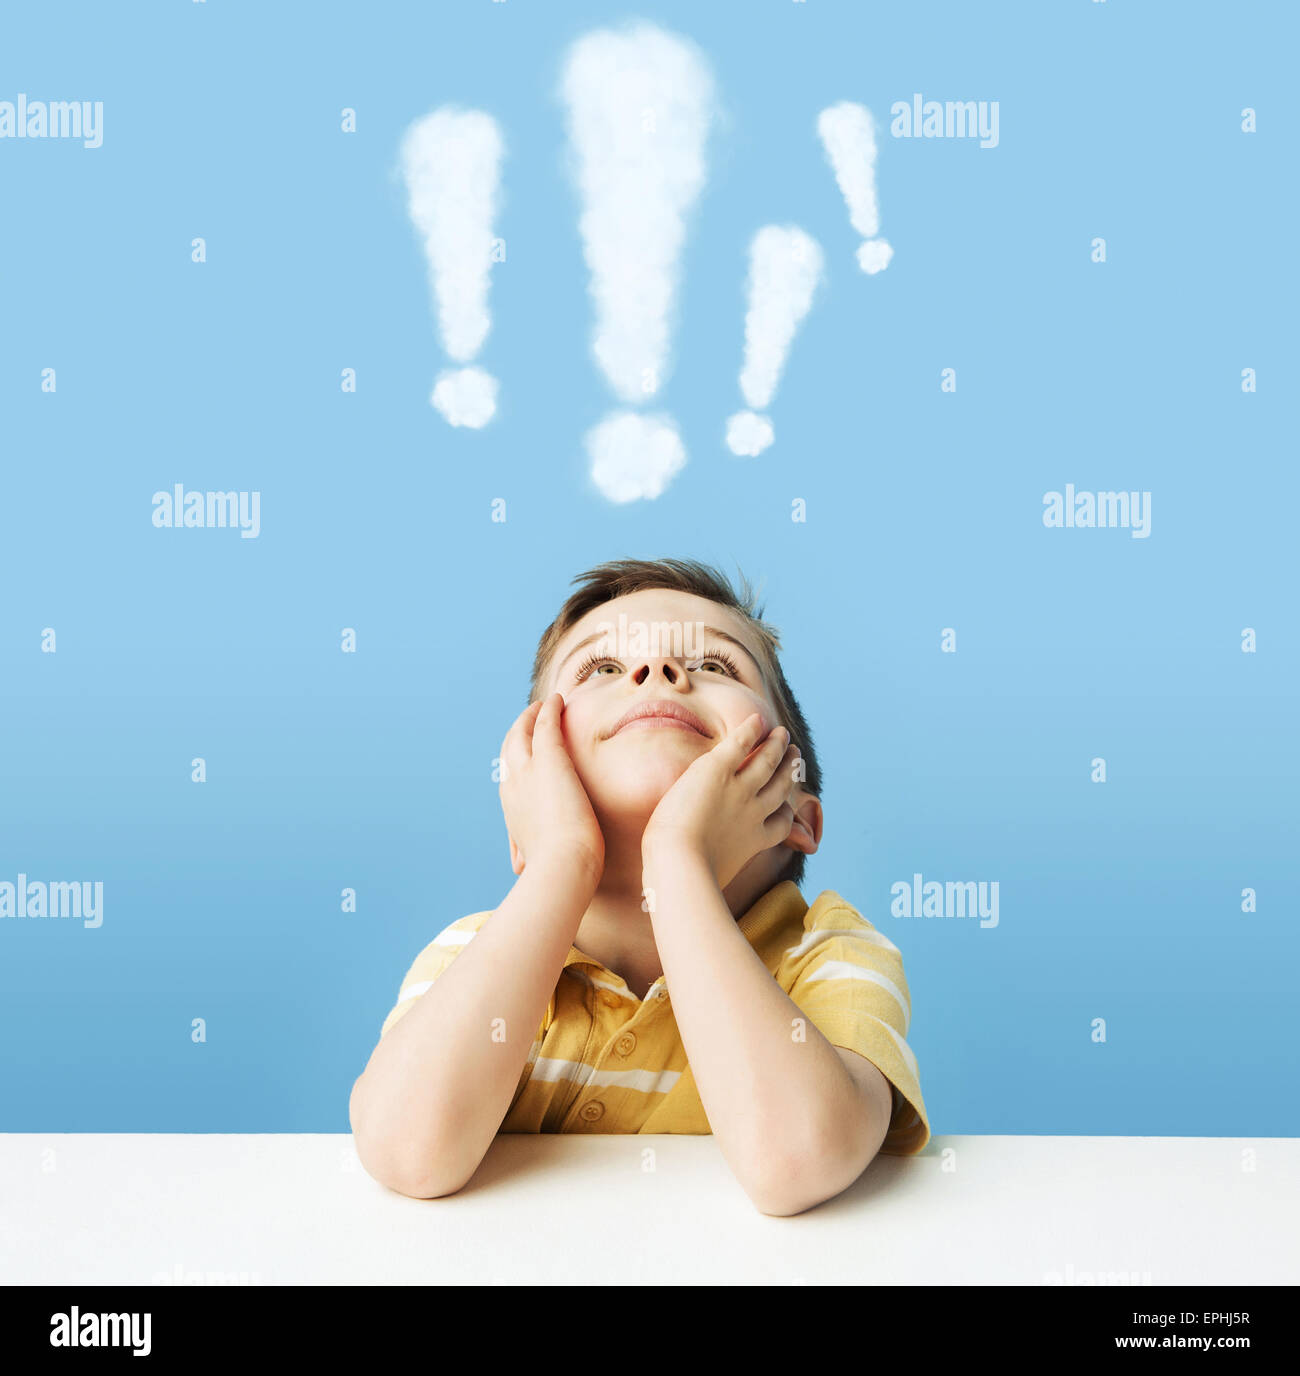 Little boy with exclamation marks above head - Stock Image